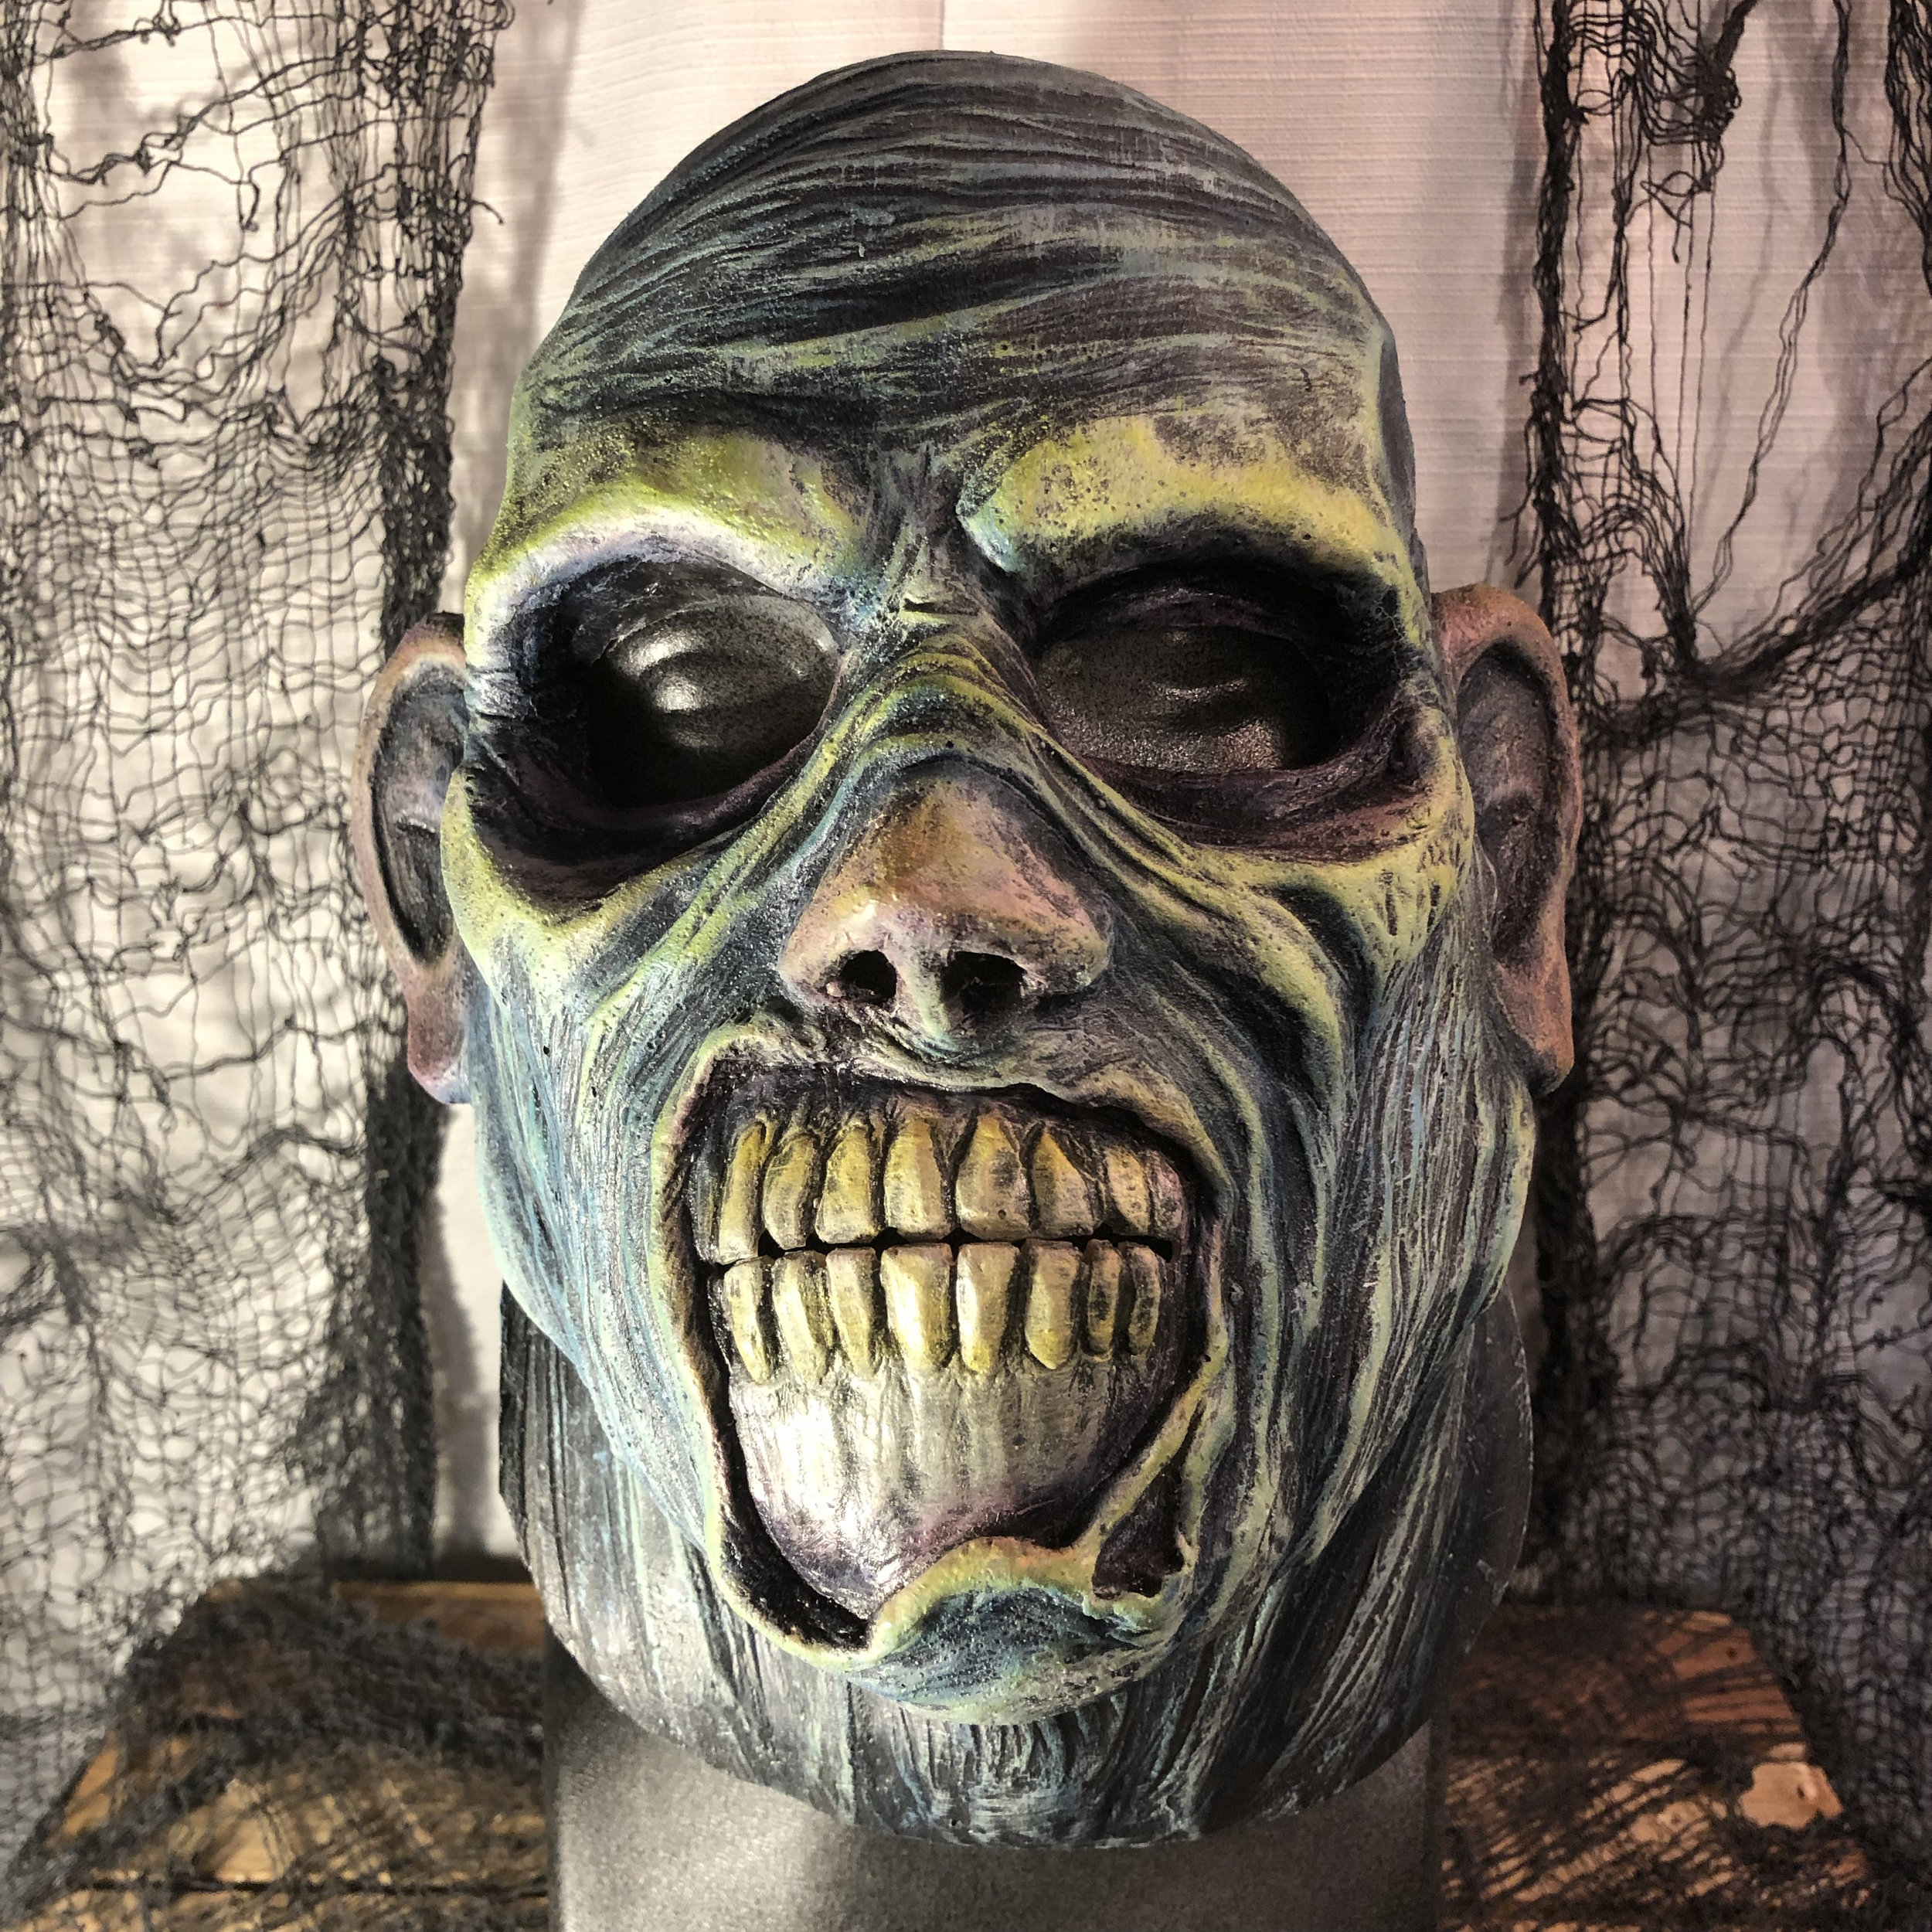 Lipless Zed    $80.00   Lipless Zed covers your face and front of your neck.  When worn with a hoodie, you will be completely disguised.  100% Natural Latex Mask